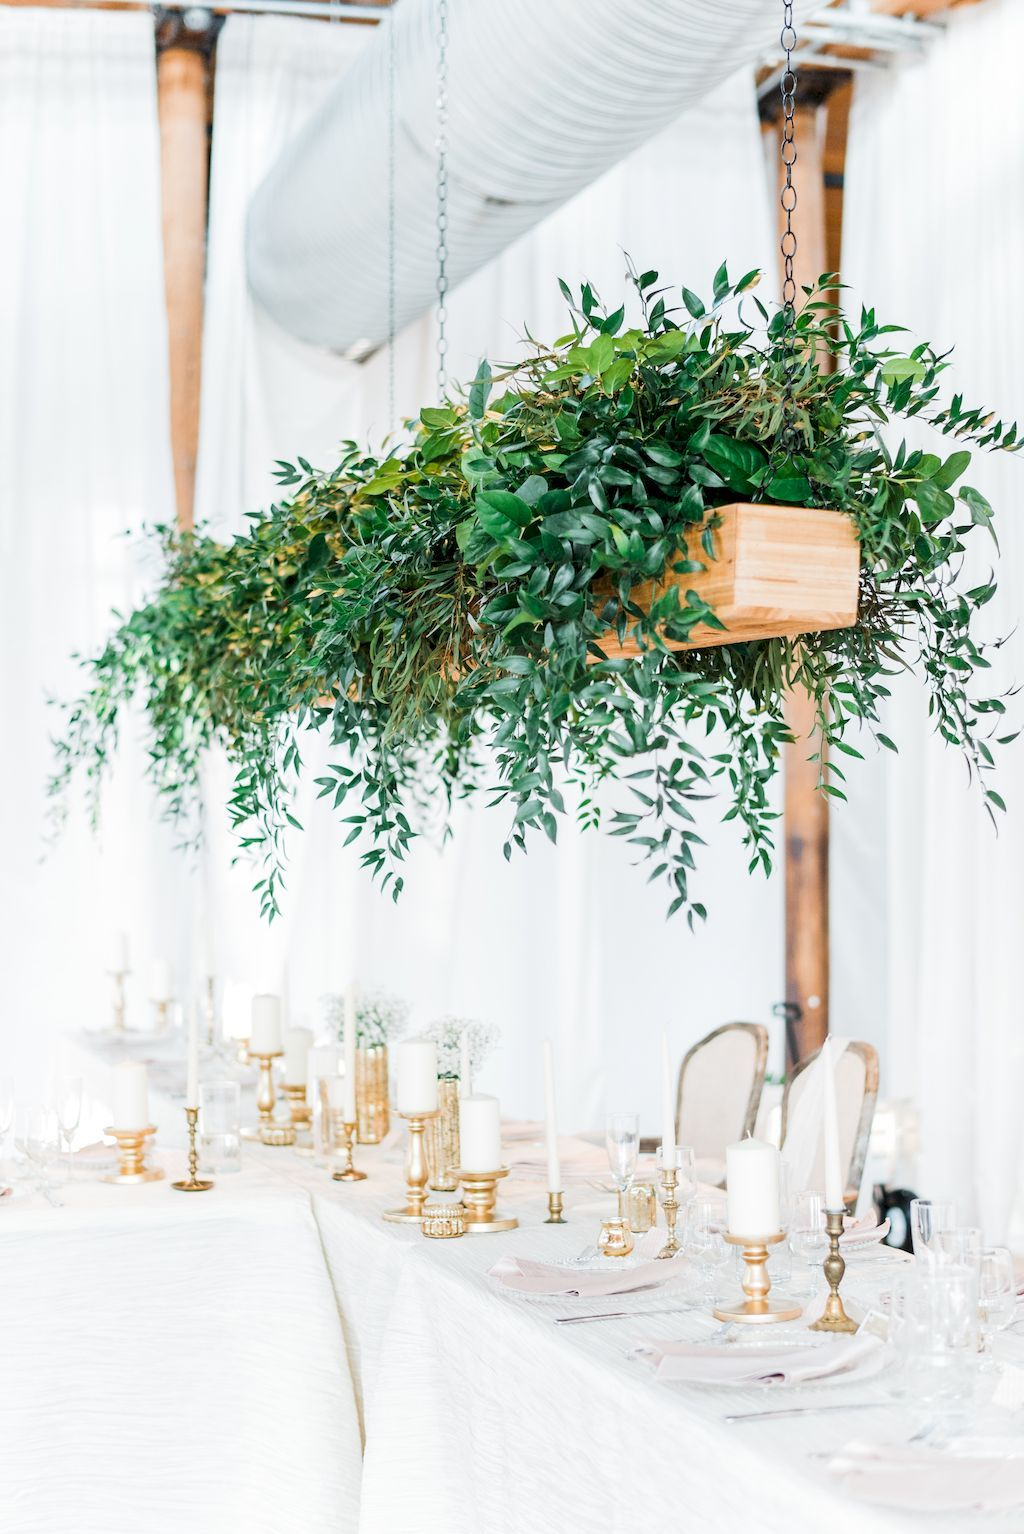 85+ Best Greenery Wedding Decor Ideas | Pinterest | Greenery and ...